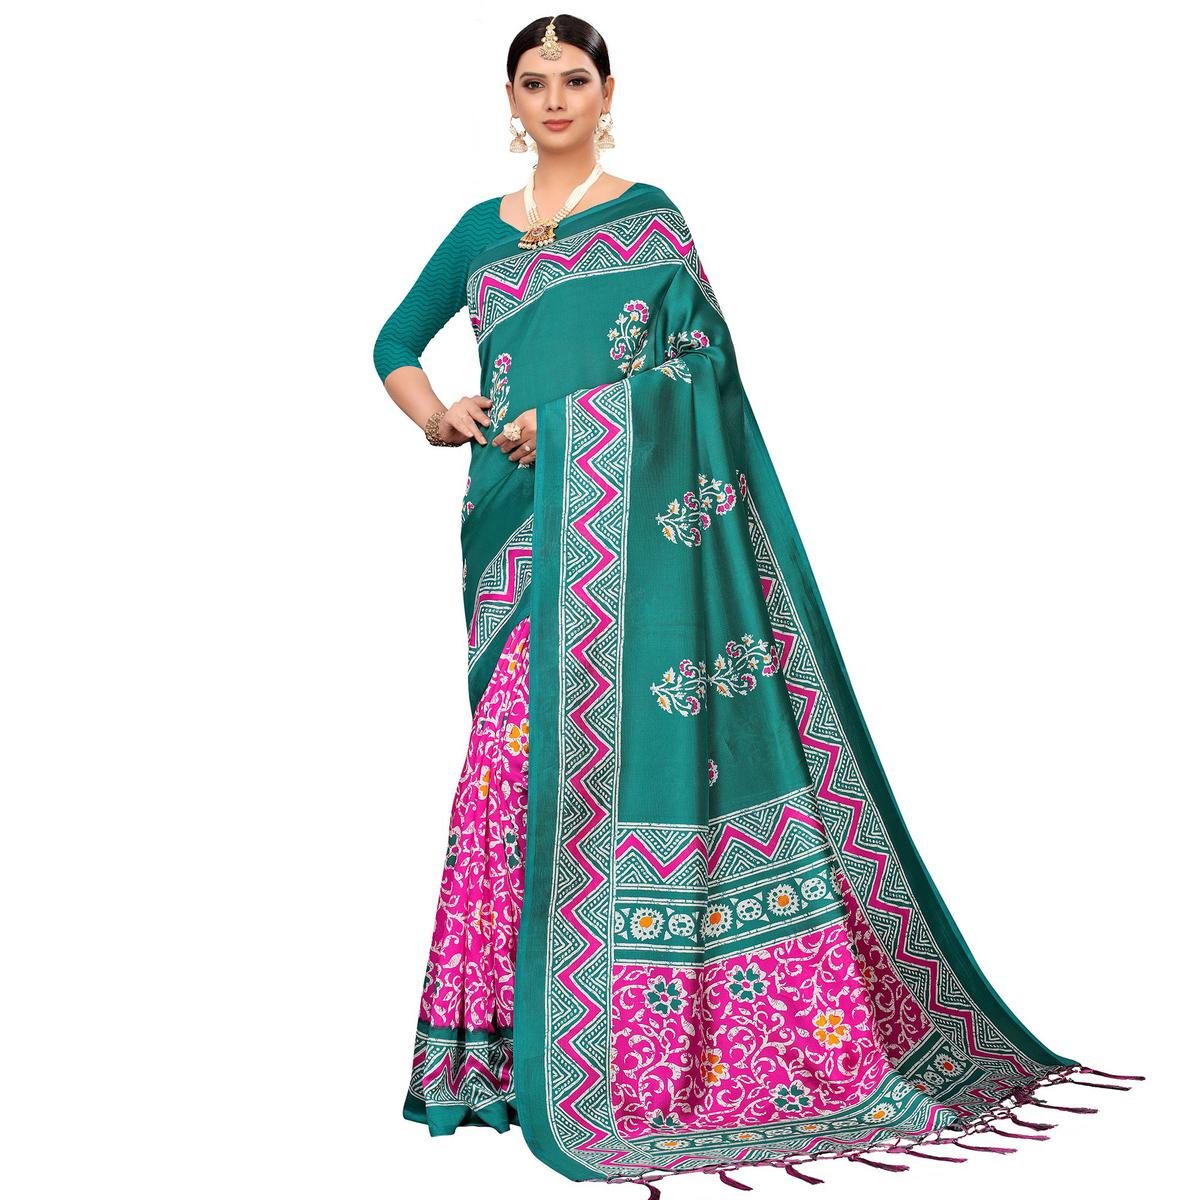 Fantastic Pink-Turquoise Green Colored Festive Wear Printed Mysore Silk Saree